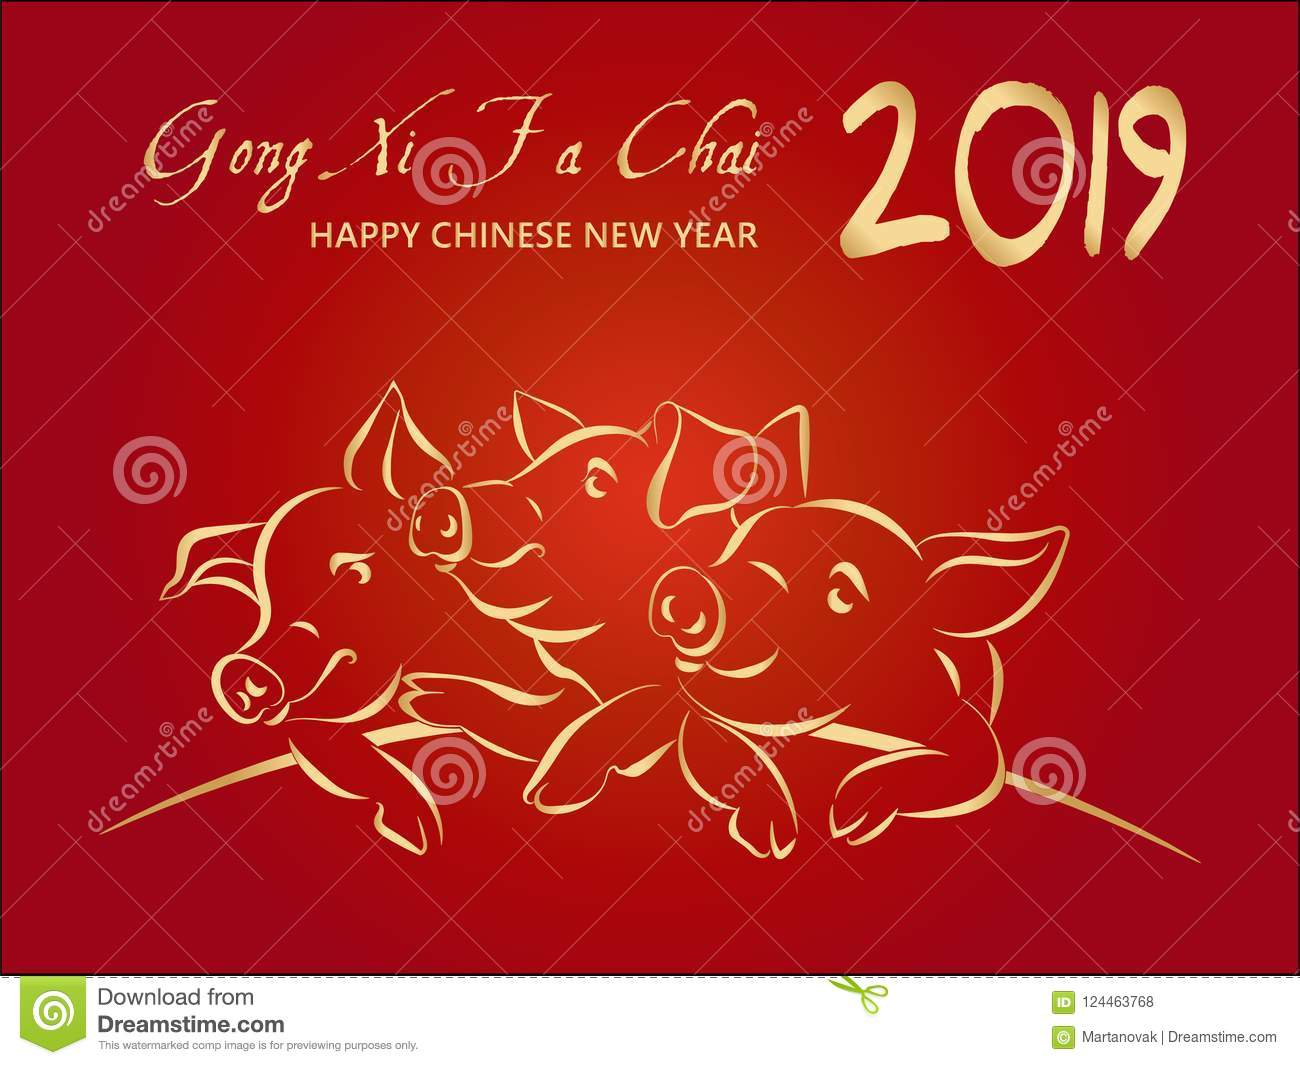 2019 happy new year greeting card banner poster flyer or download 2019 happy new year greeting card banner poster flyer or invitation with stopboris Choice Image